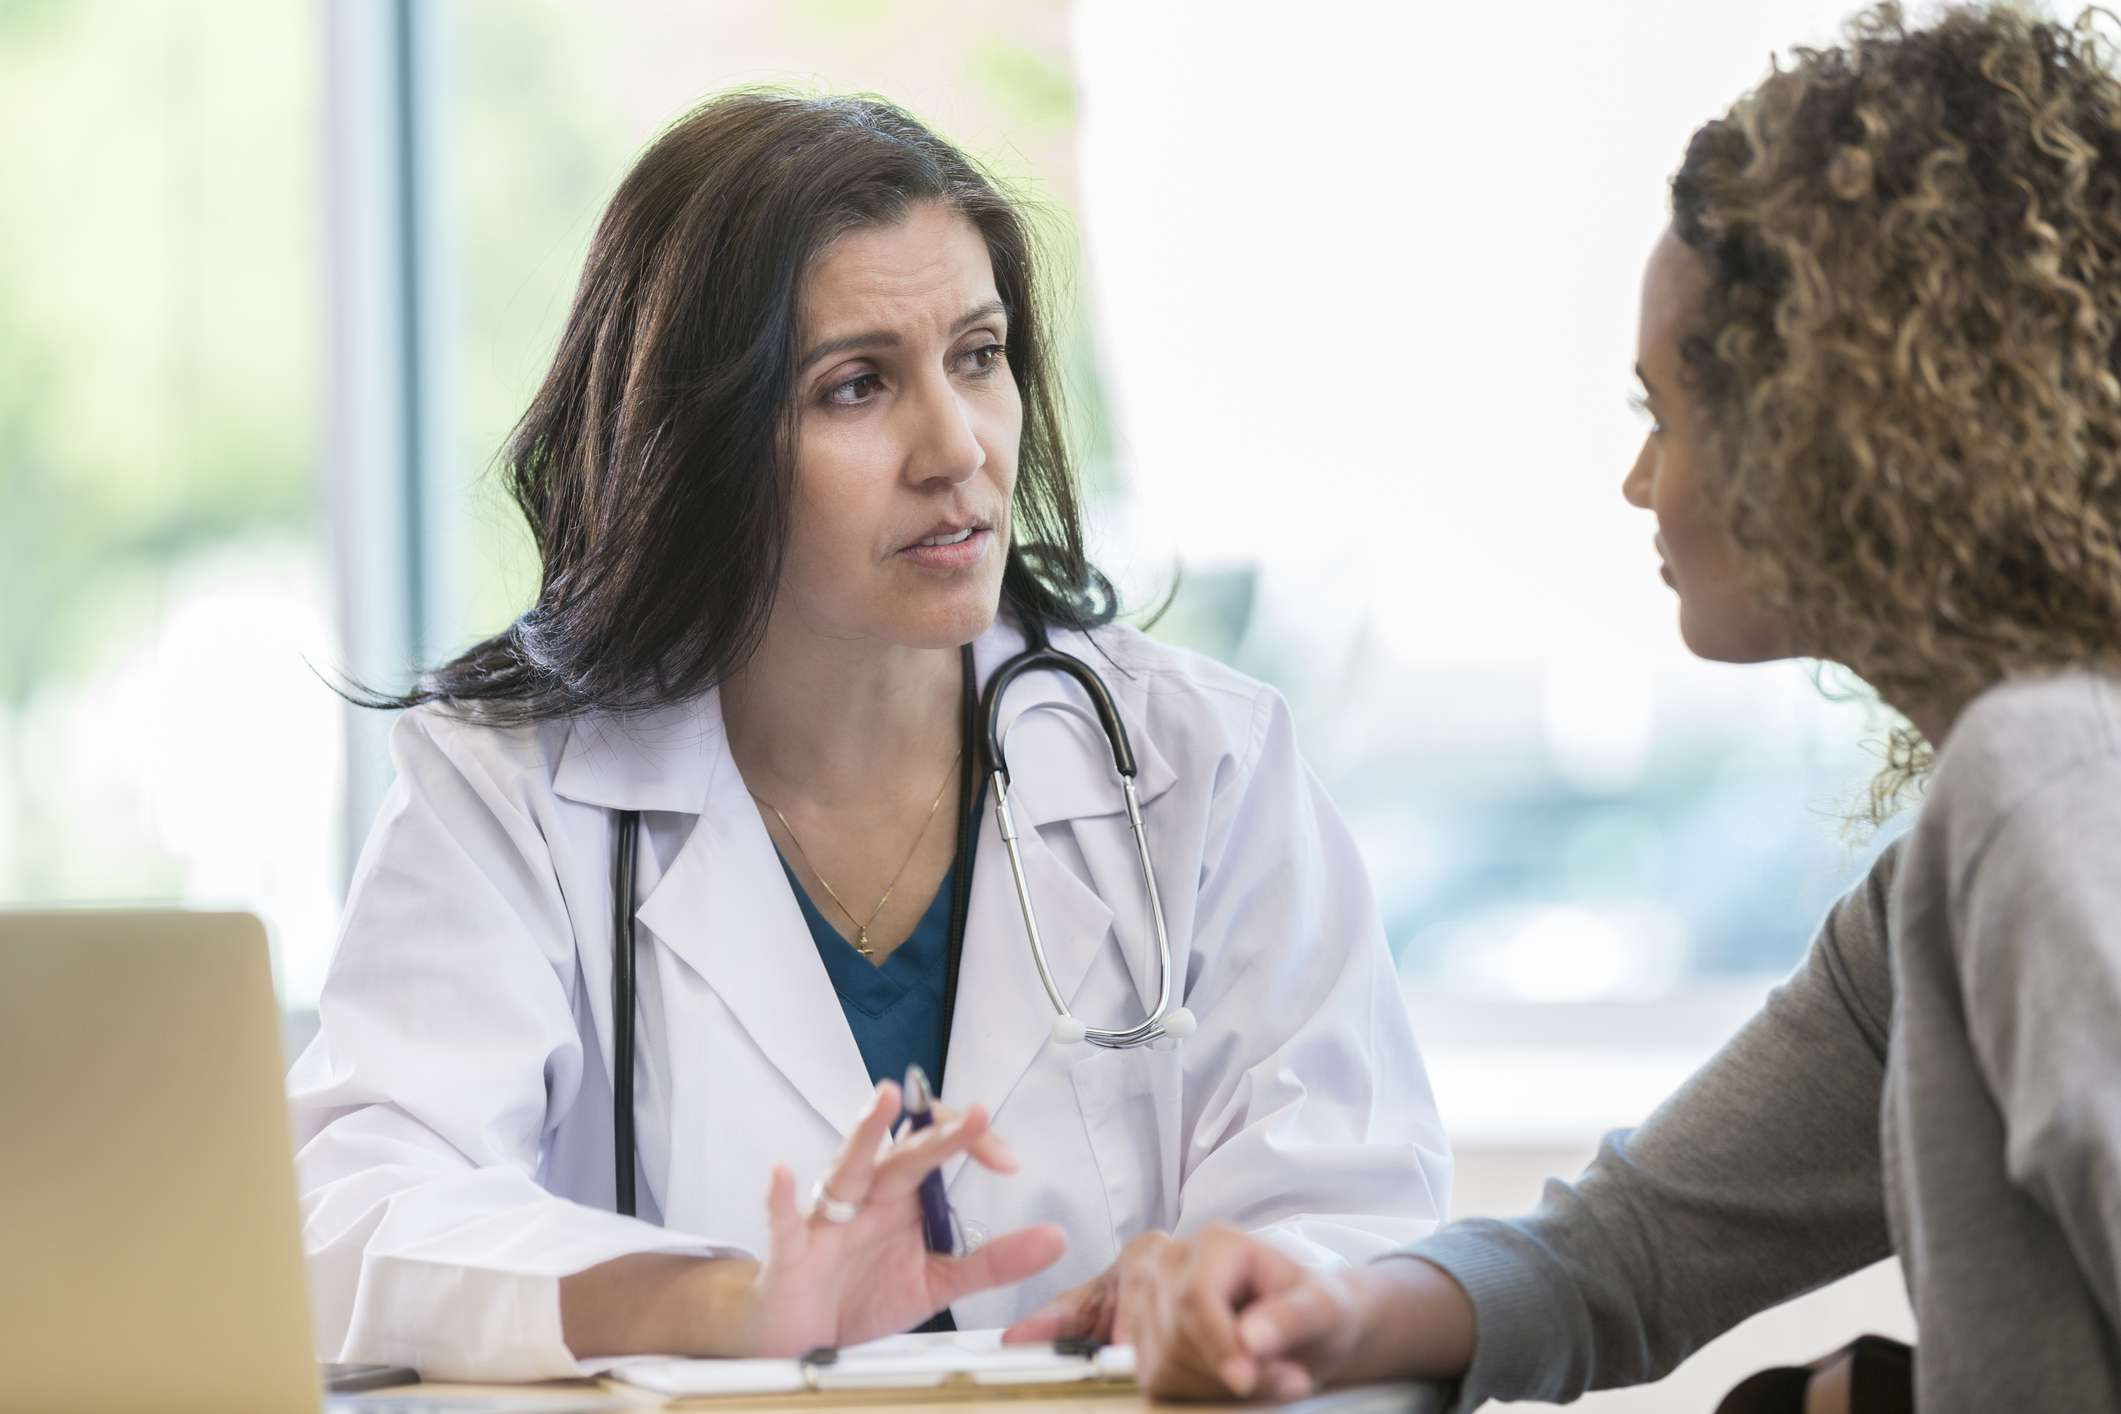 Doctor talking to her patient about her STD test